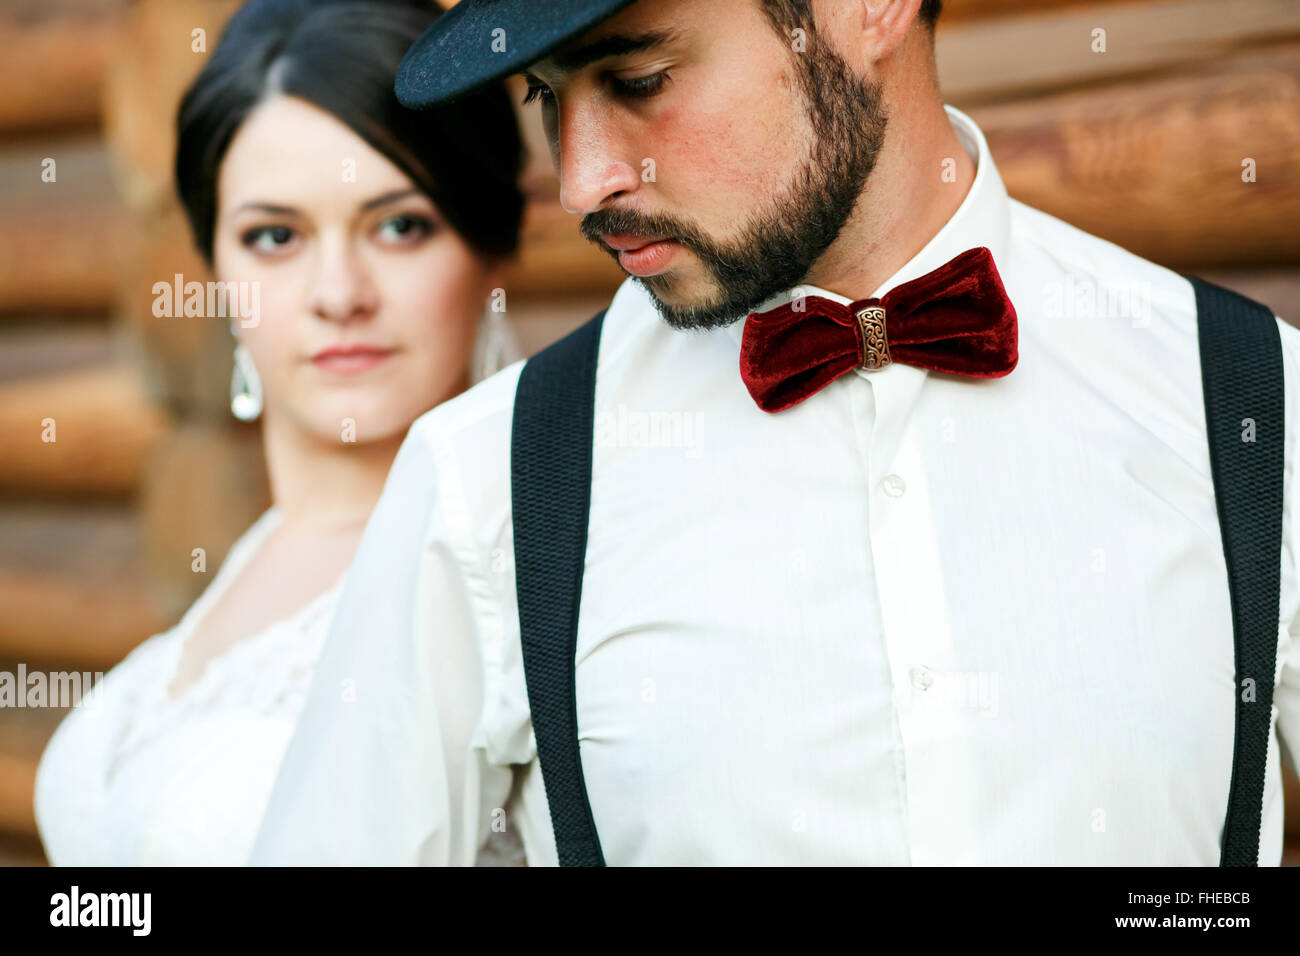 Thoughtful groom in hat with beard, mustache, bow tie and suspenders. Bride wearing white wedding dress. Gangster - Stock Image